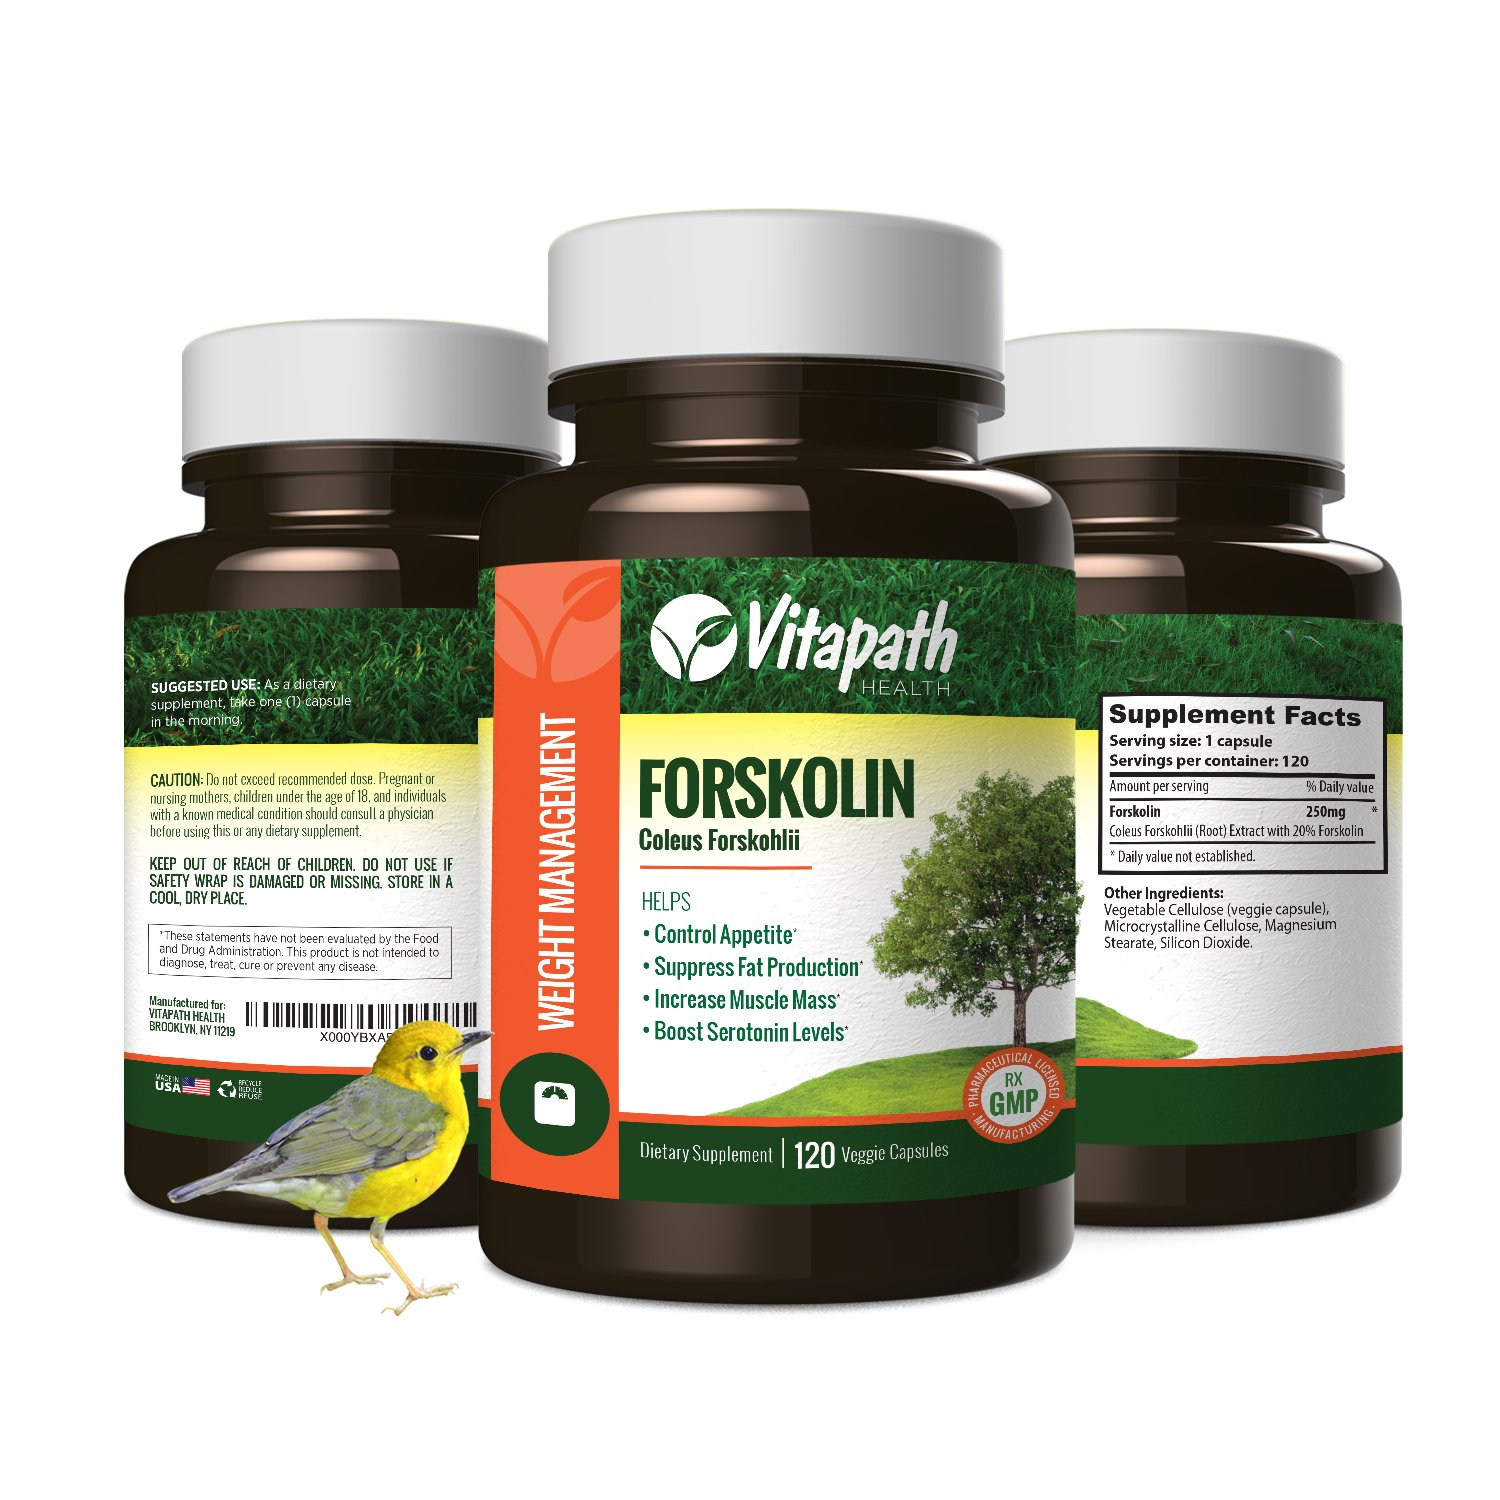 Forskolin Extract for Weight Loss, All Natural 250mg Appetite Suppressant Energy Booster, Healthy Fat Burner Formula With Forskohlli & 70% HCA -120 Veggie Caps- By Vitapath